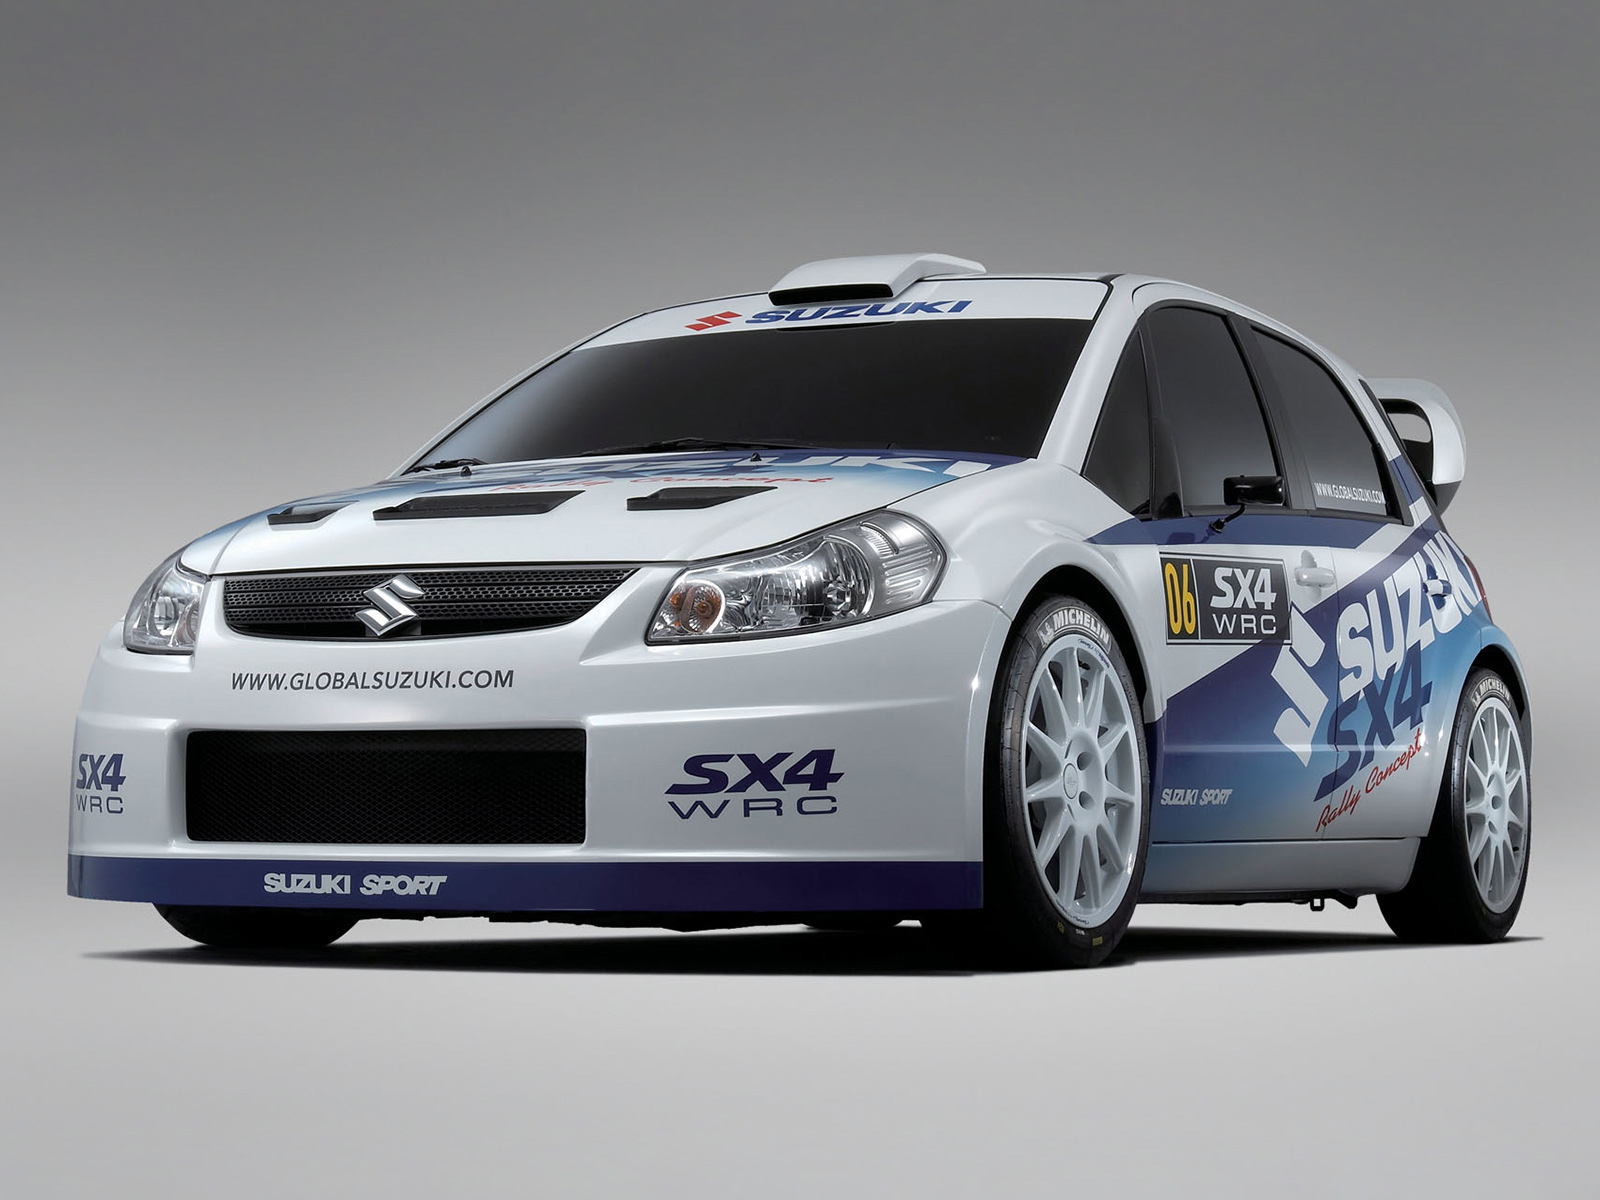 You can vote for this Suzuki SX4 WRC photo